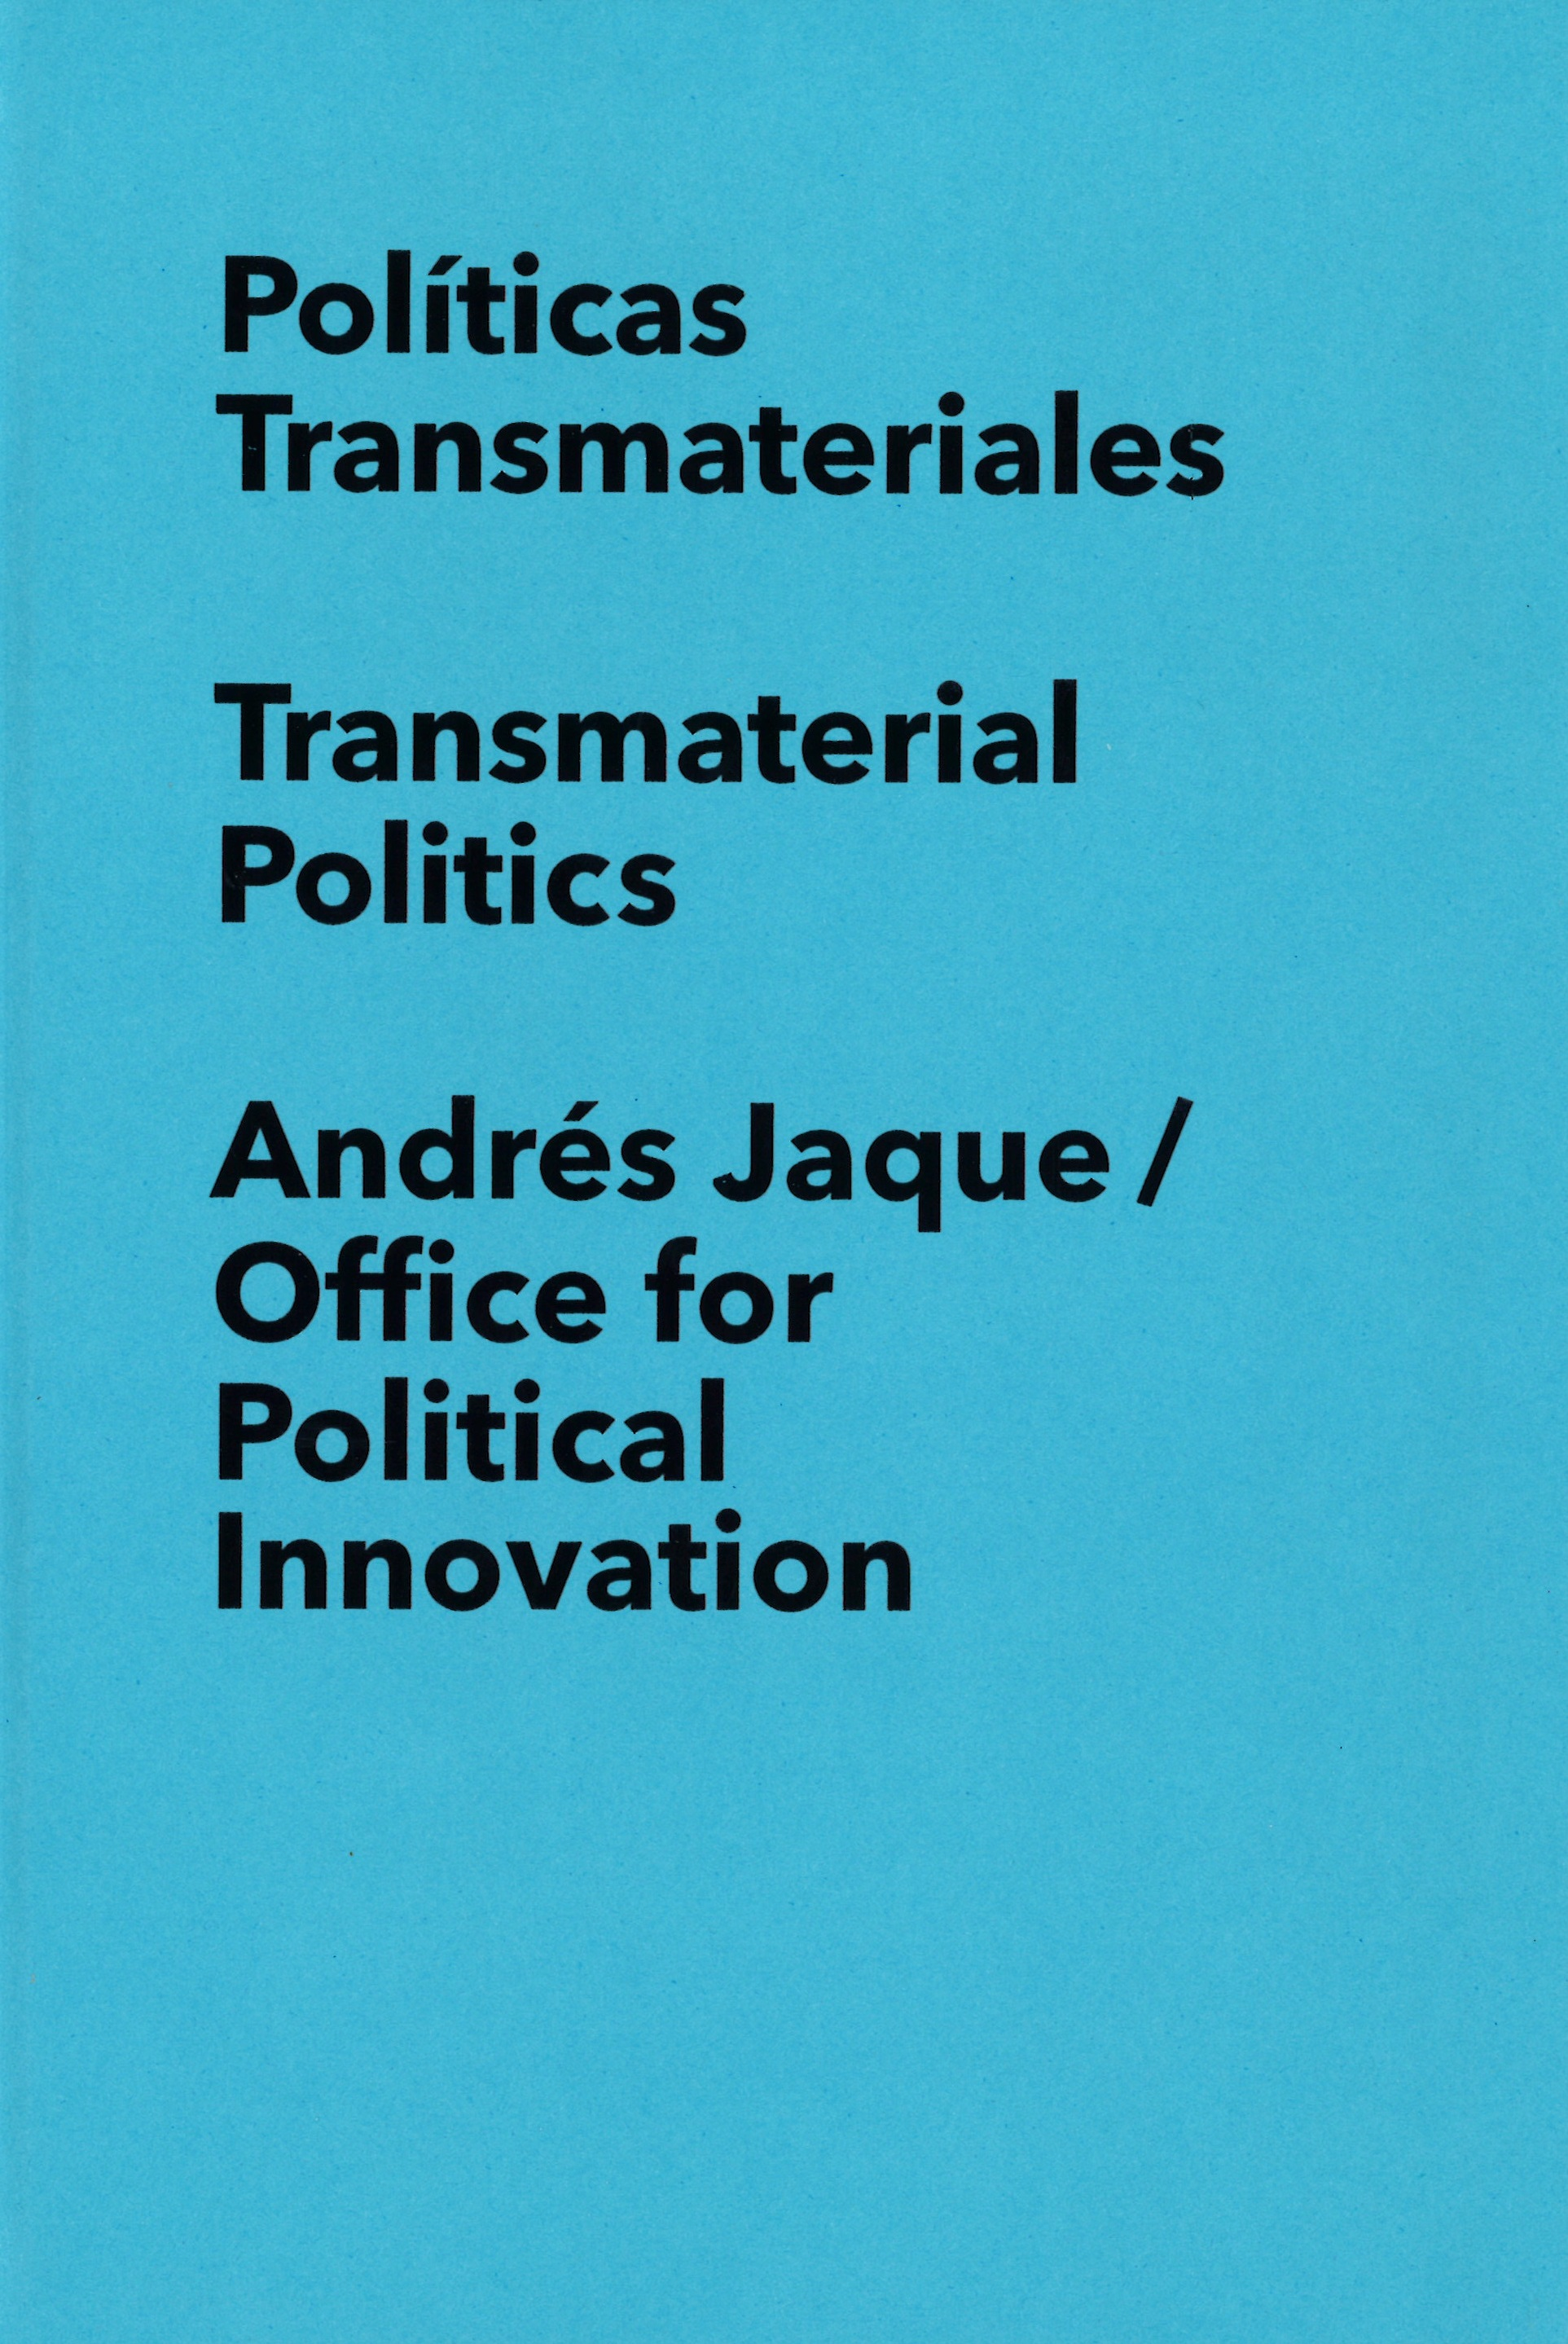 politicas-transmaterialestransmaterial-politics-andres-jaqueoffice-for-political-innovation